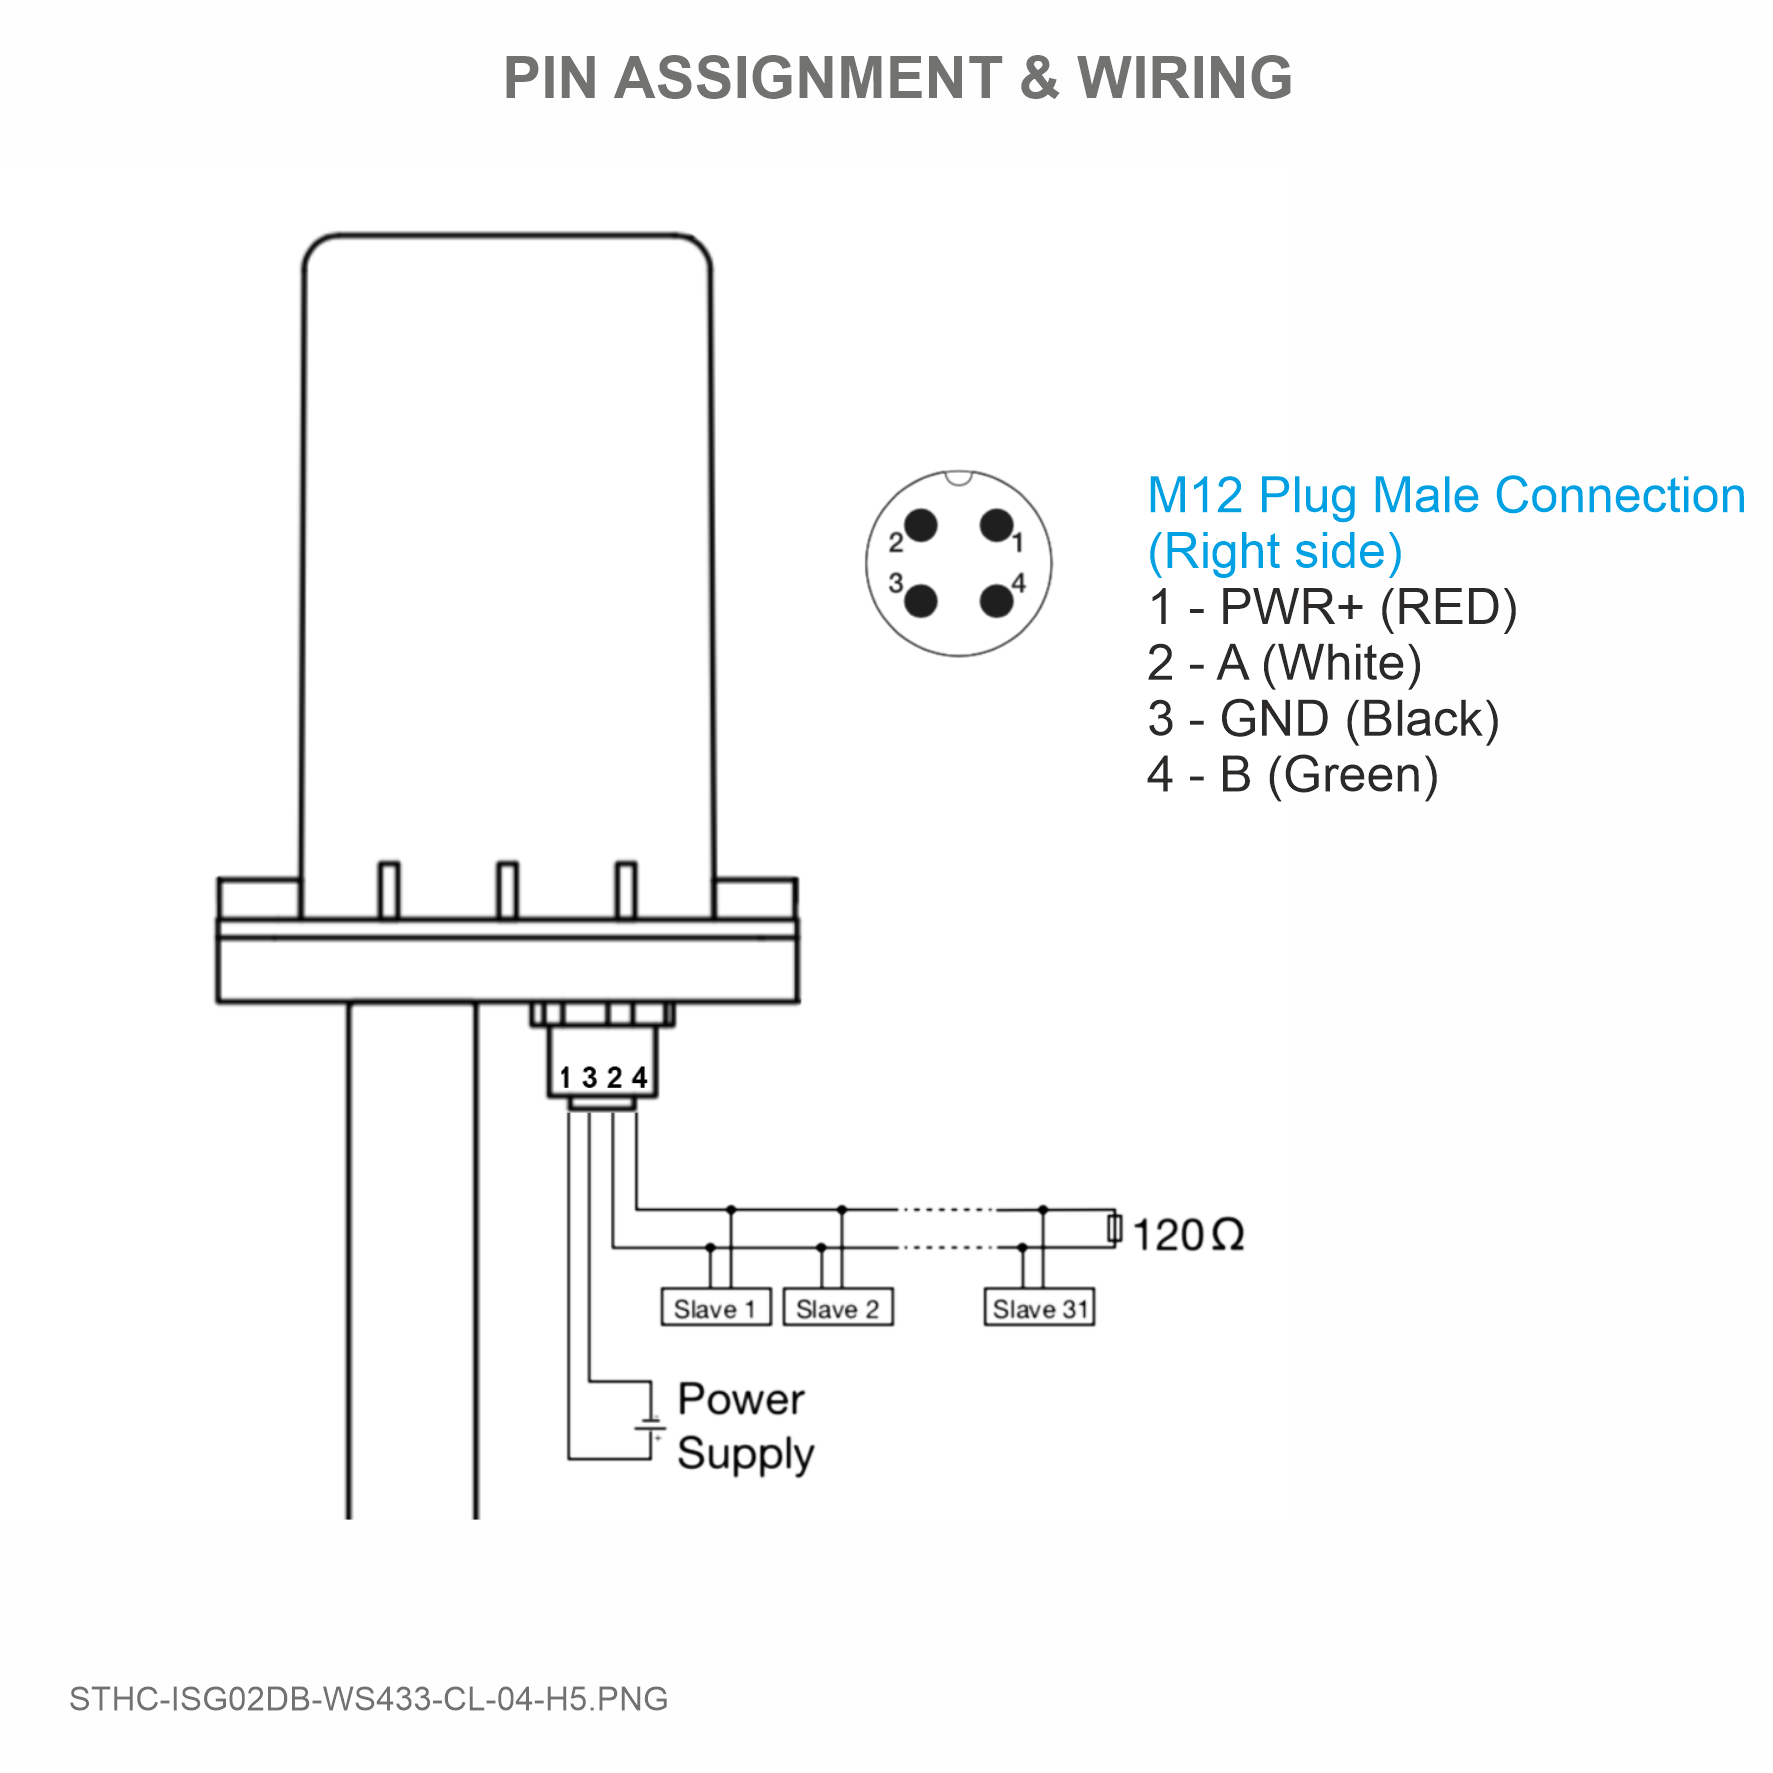 STHC-ISG02DB-WS433-CL-04-H5.png